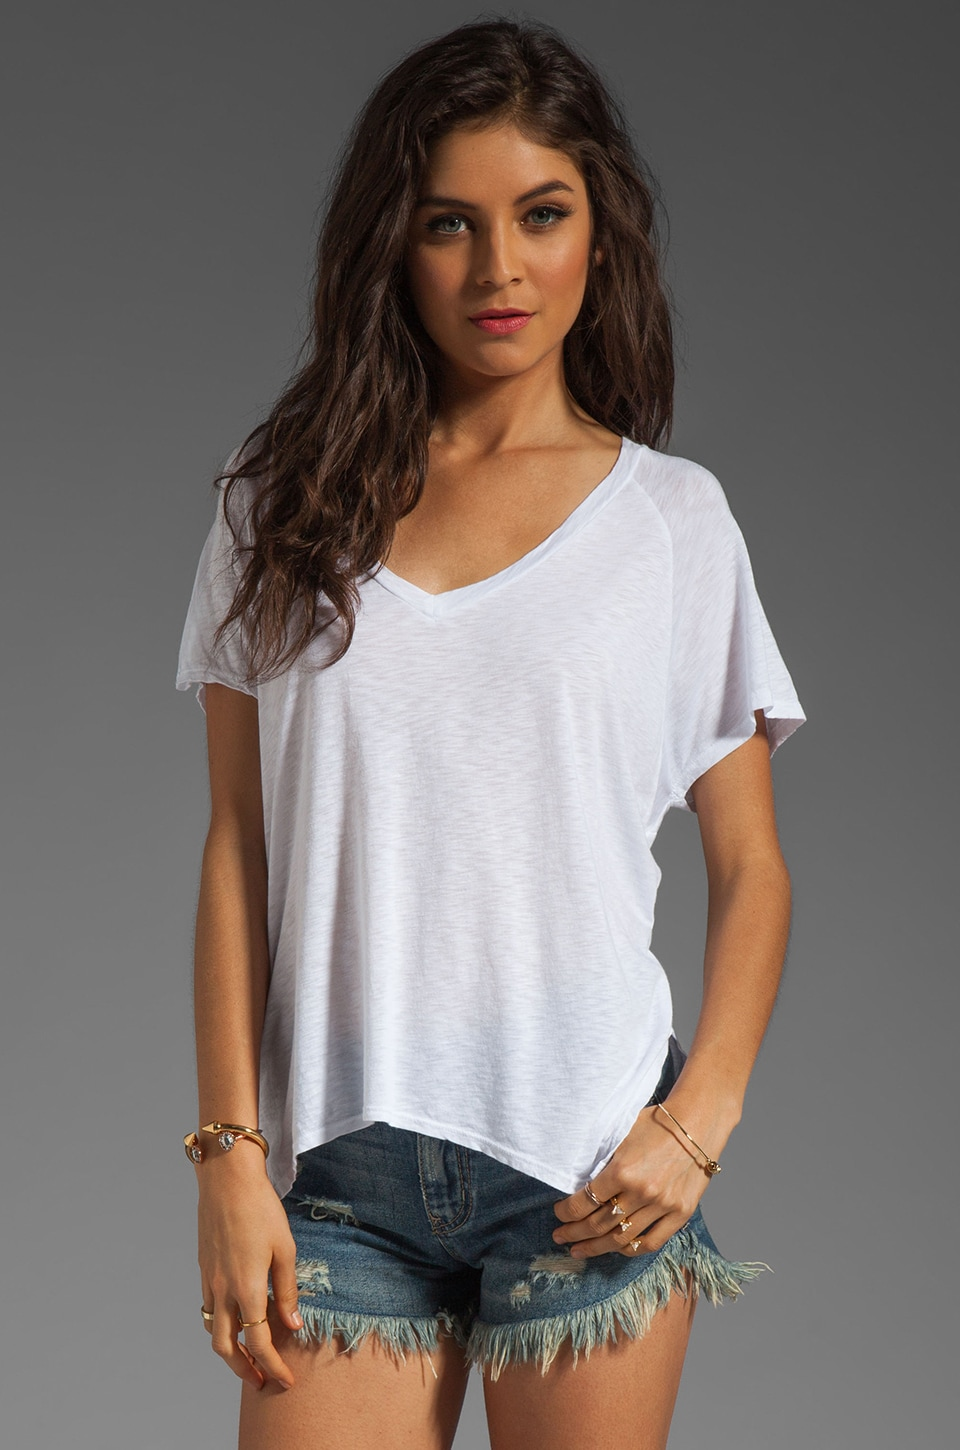 Velvet by Graham & Spencer Darcy Luxe Slub Top in White